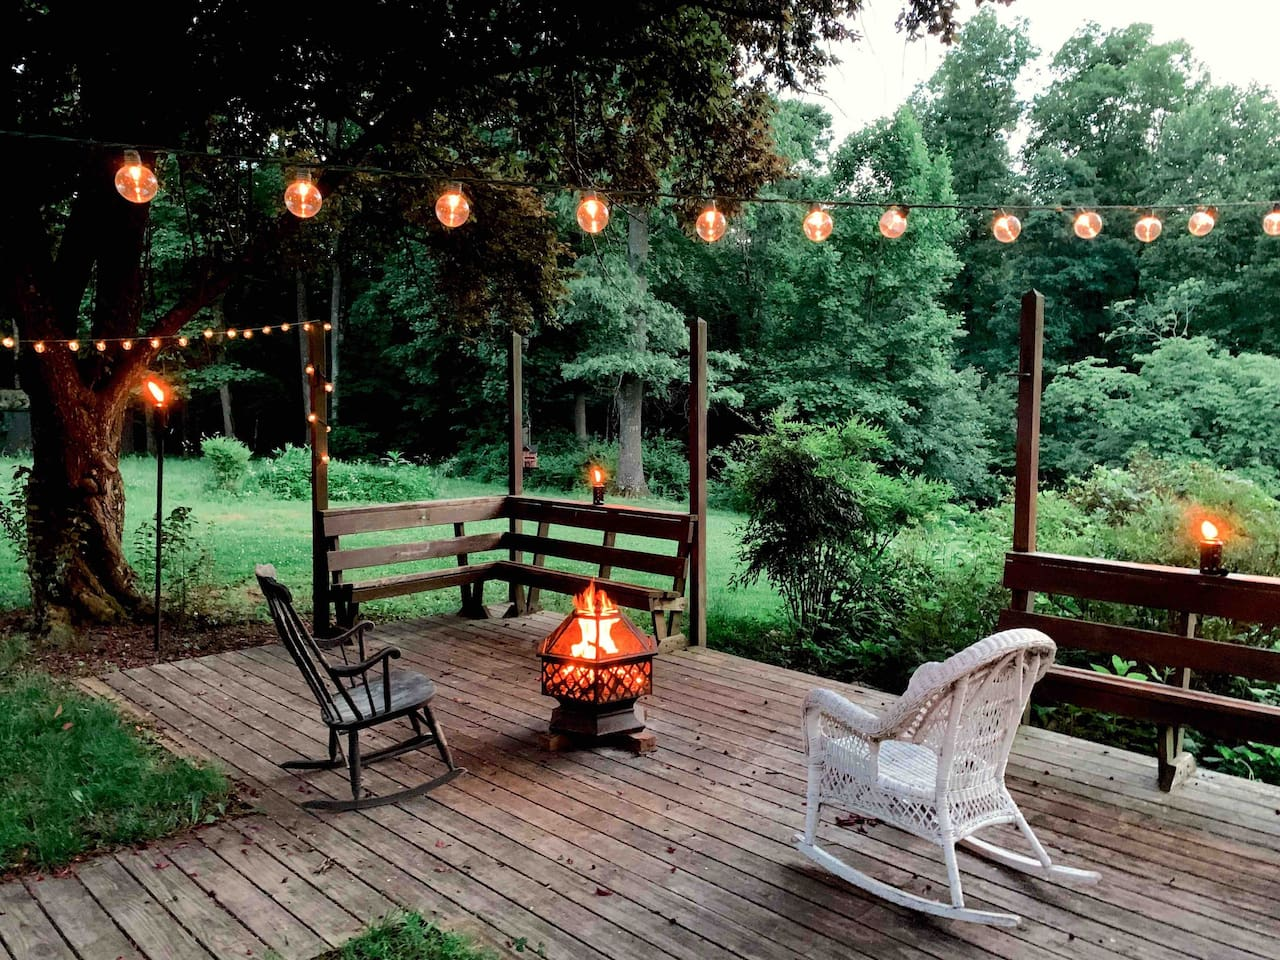 Feel free to enjoy the fire pit, as long as we're home you're welcome to make a fire!